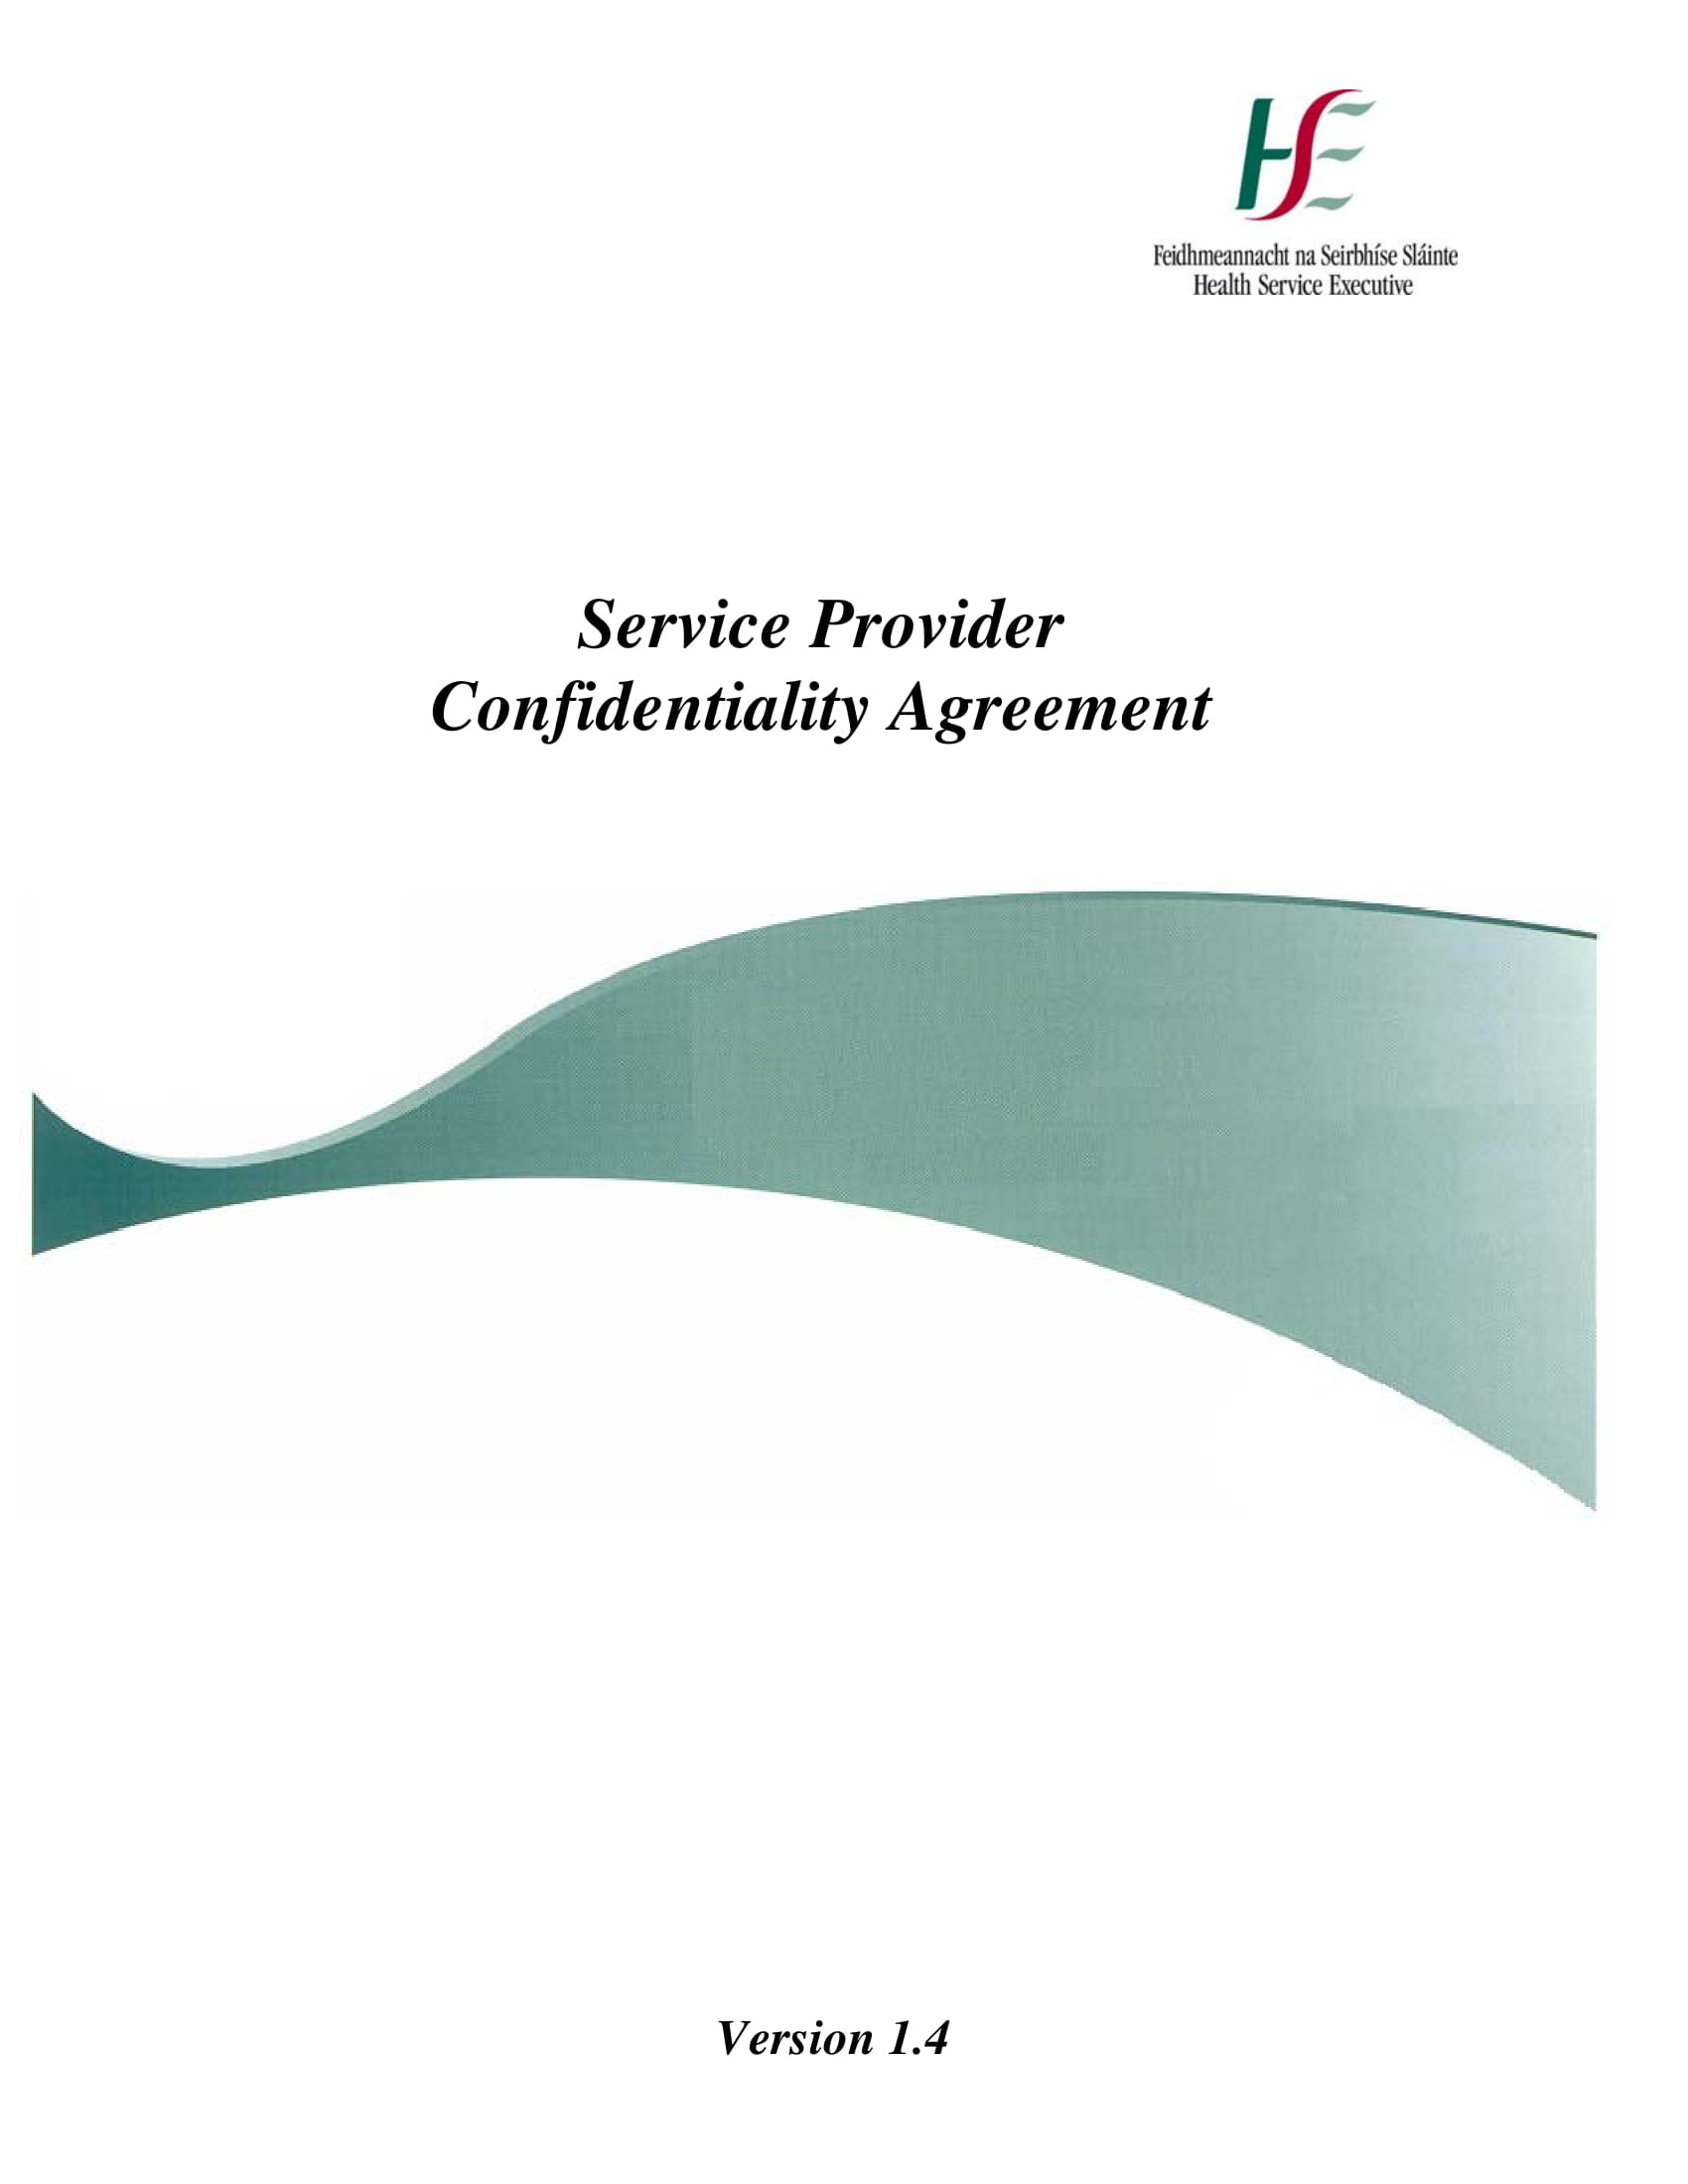 service provider client confidentiality agreement example